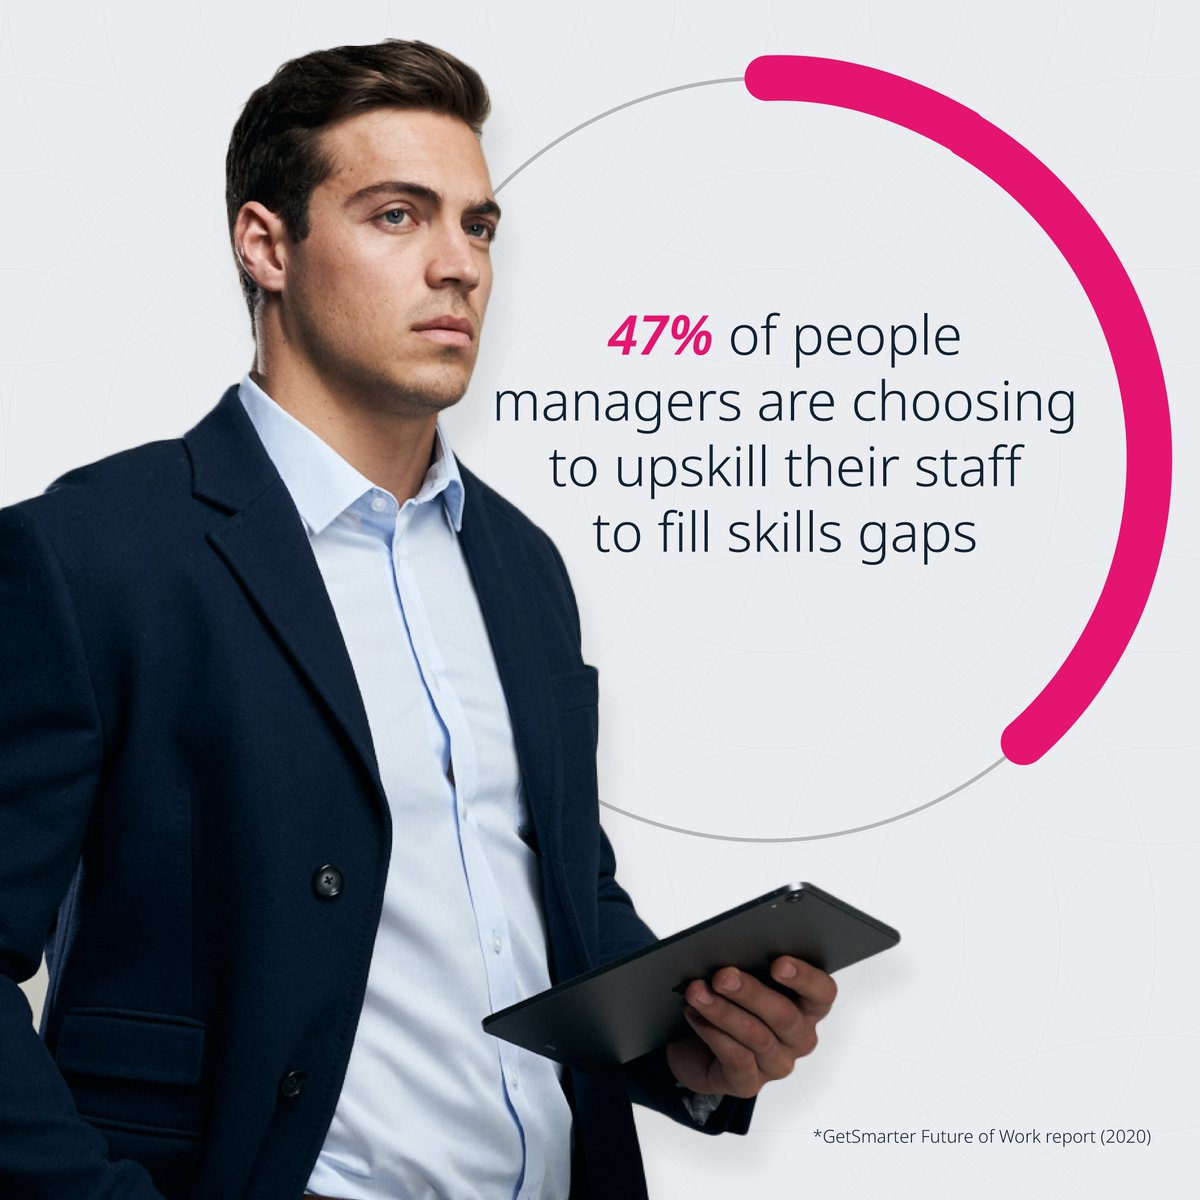 When it comes to filling skills gaps, more people managers than ever are choosing internal training over hiring new staff. https://t.co/VQ51kyGoHC   #GetSmarterOnline#FutureofWork #FutureCareers#CareerAdvice #LearningandDevelopment https://t.co/WZlv51RSoi